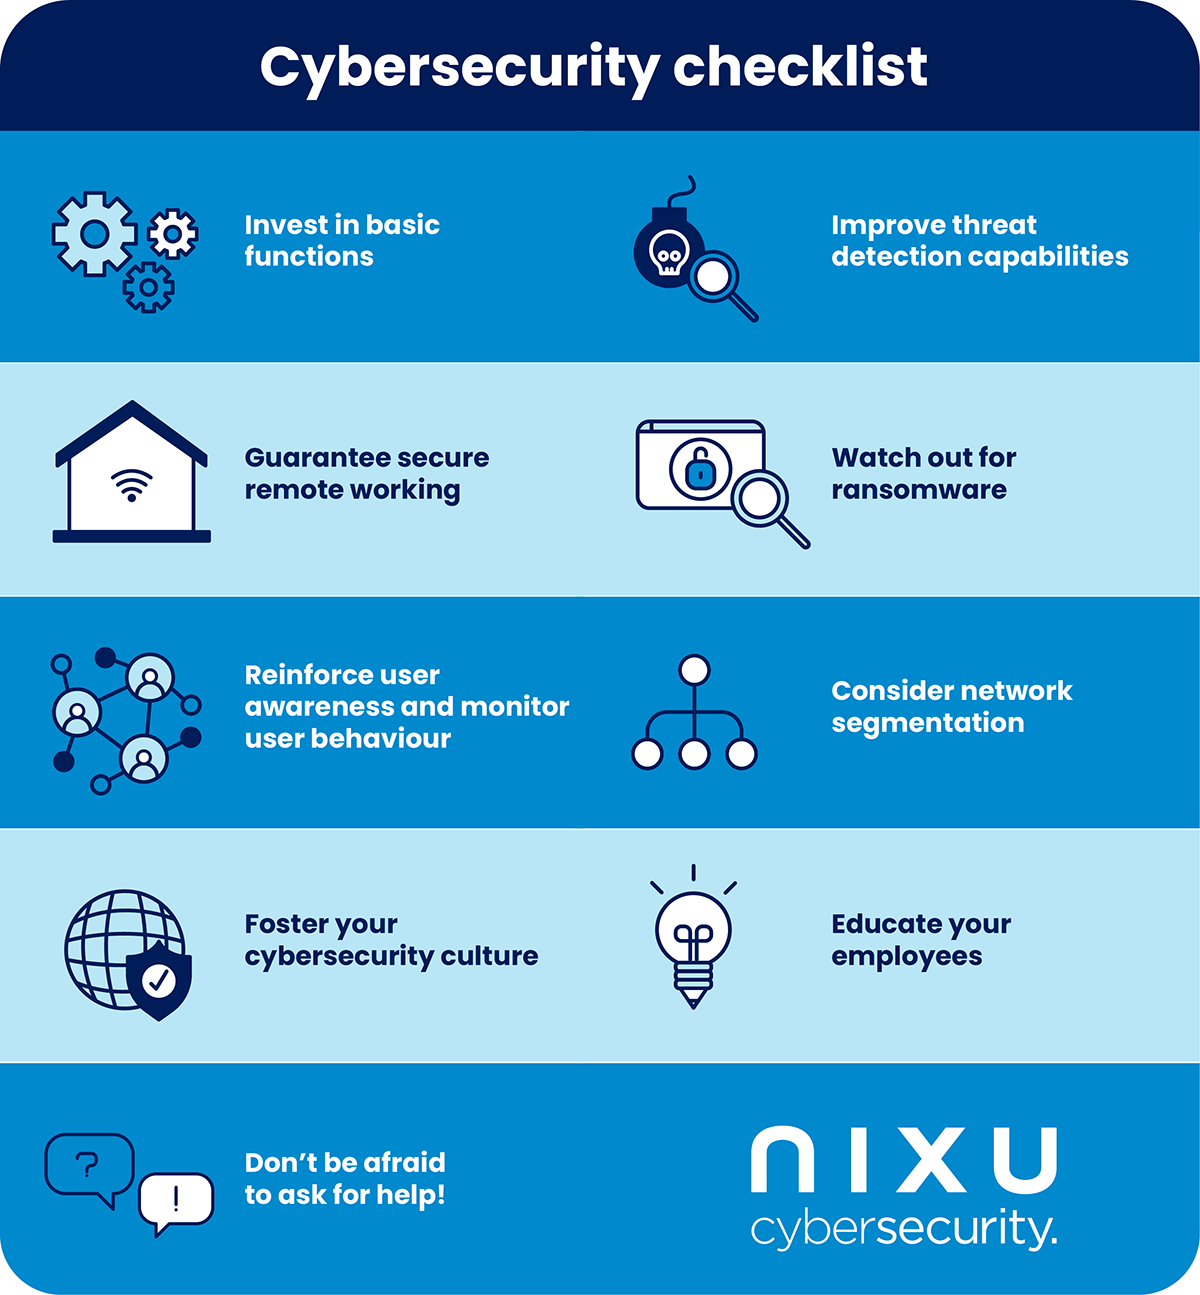 Cybersecurity checklist 2021